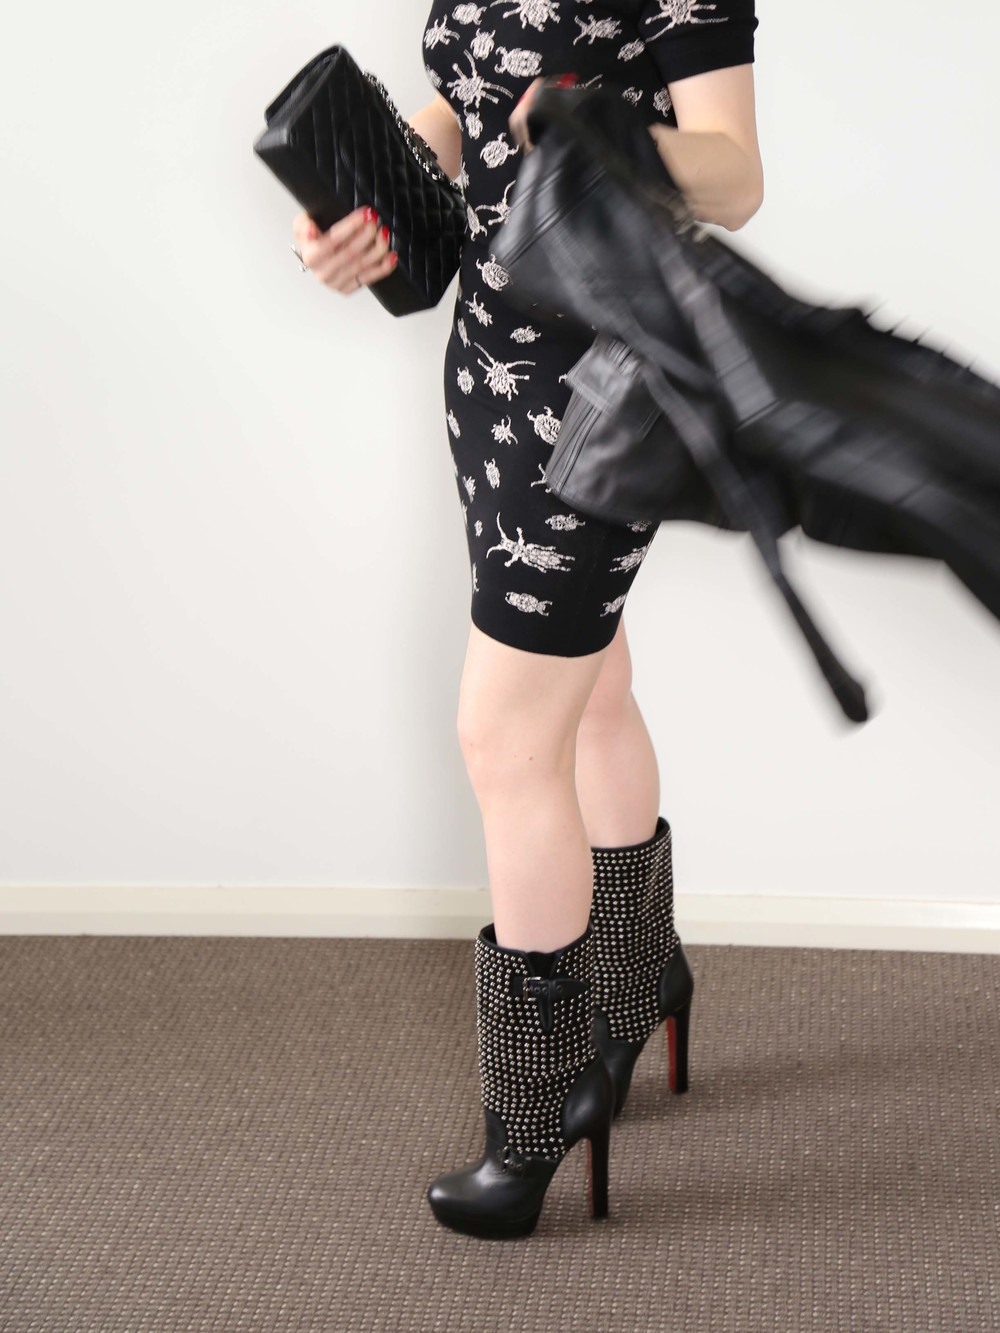 McQ Insect Print Dress, Burberry Prorsum Leather Jacket, Chanel Bag, Silver Knot Cuff, Onyx Bracelet, Louboutin Studded Boots